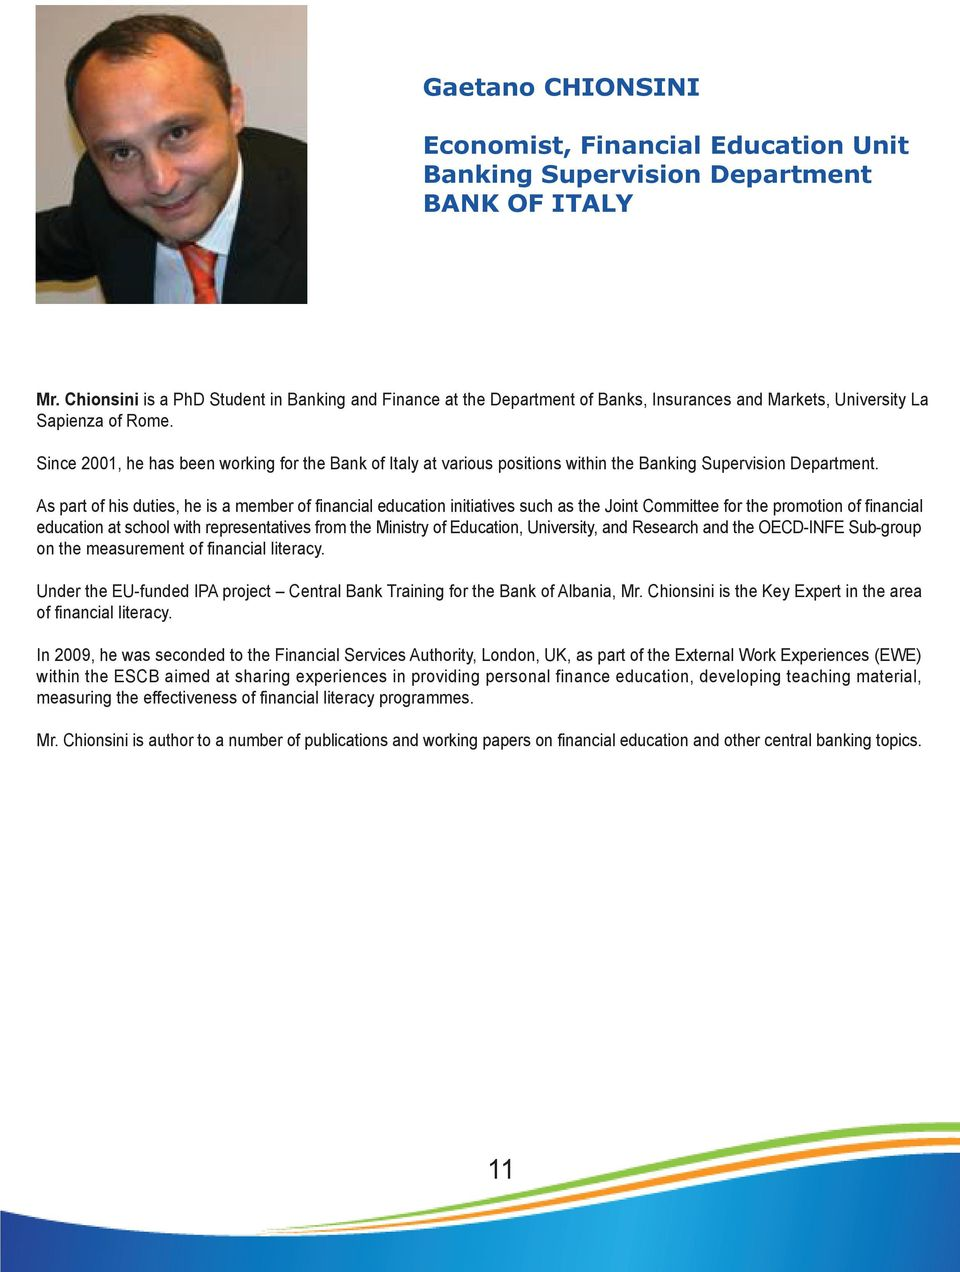 Since 2001, he has been working for the Bank of Italy at various positions within the Banking Supervision Department.